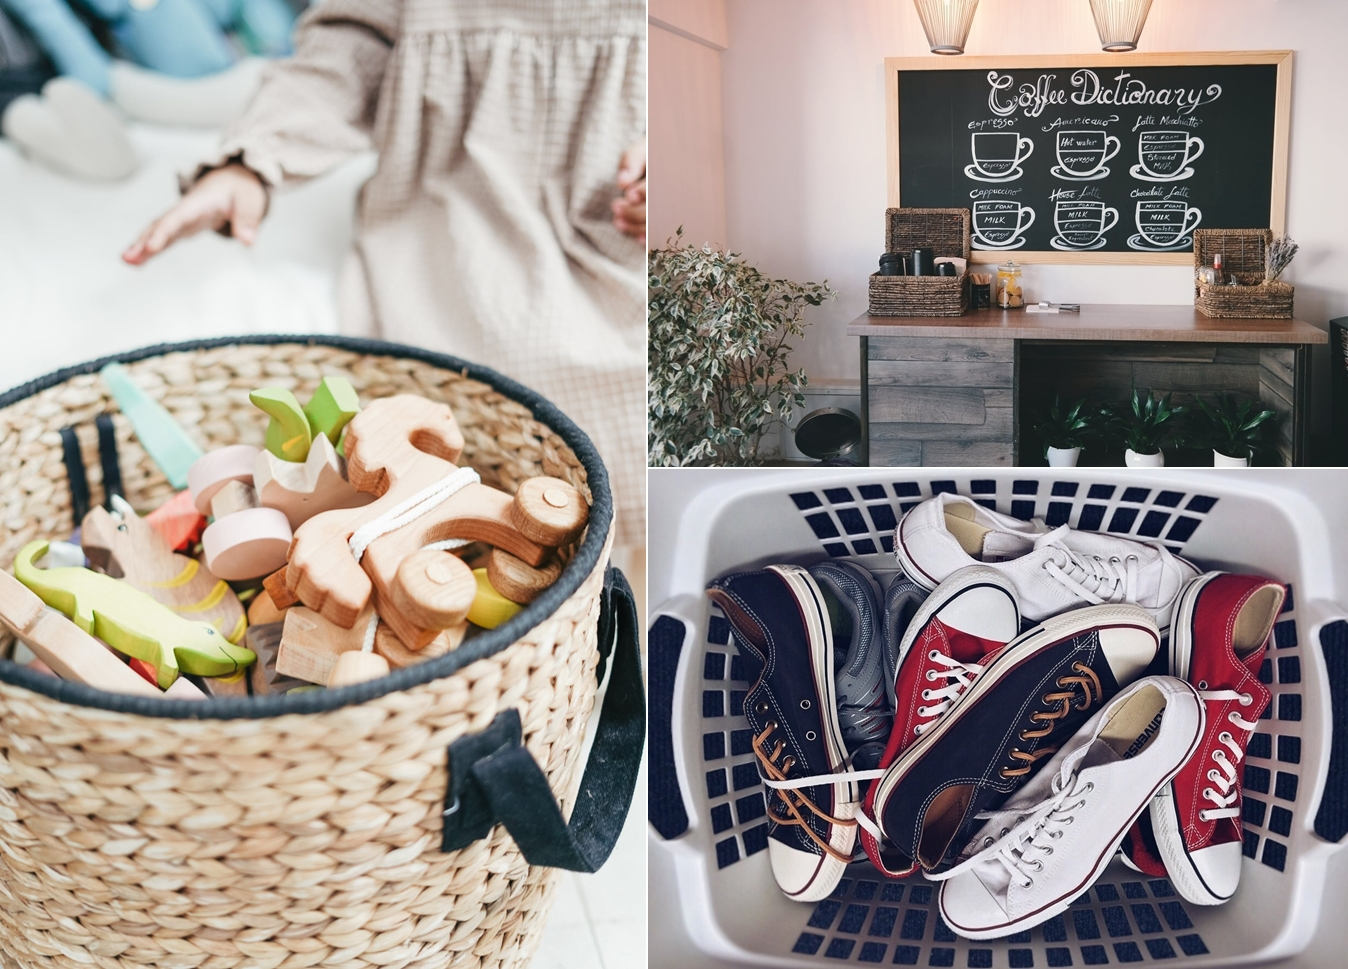 Reduce clutter with baskets